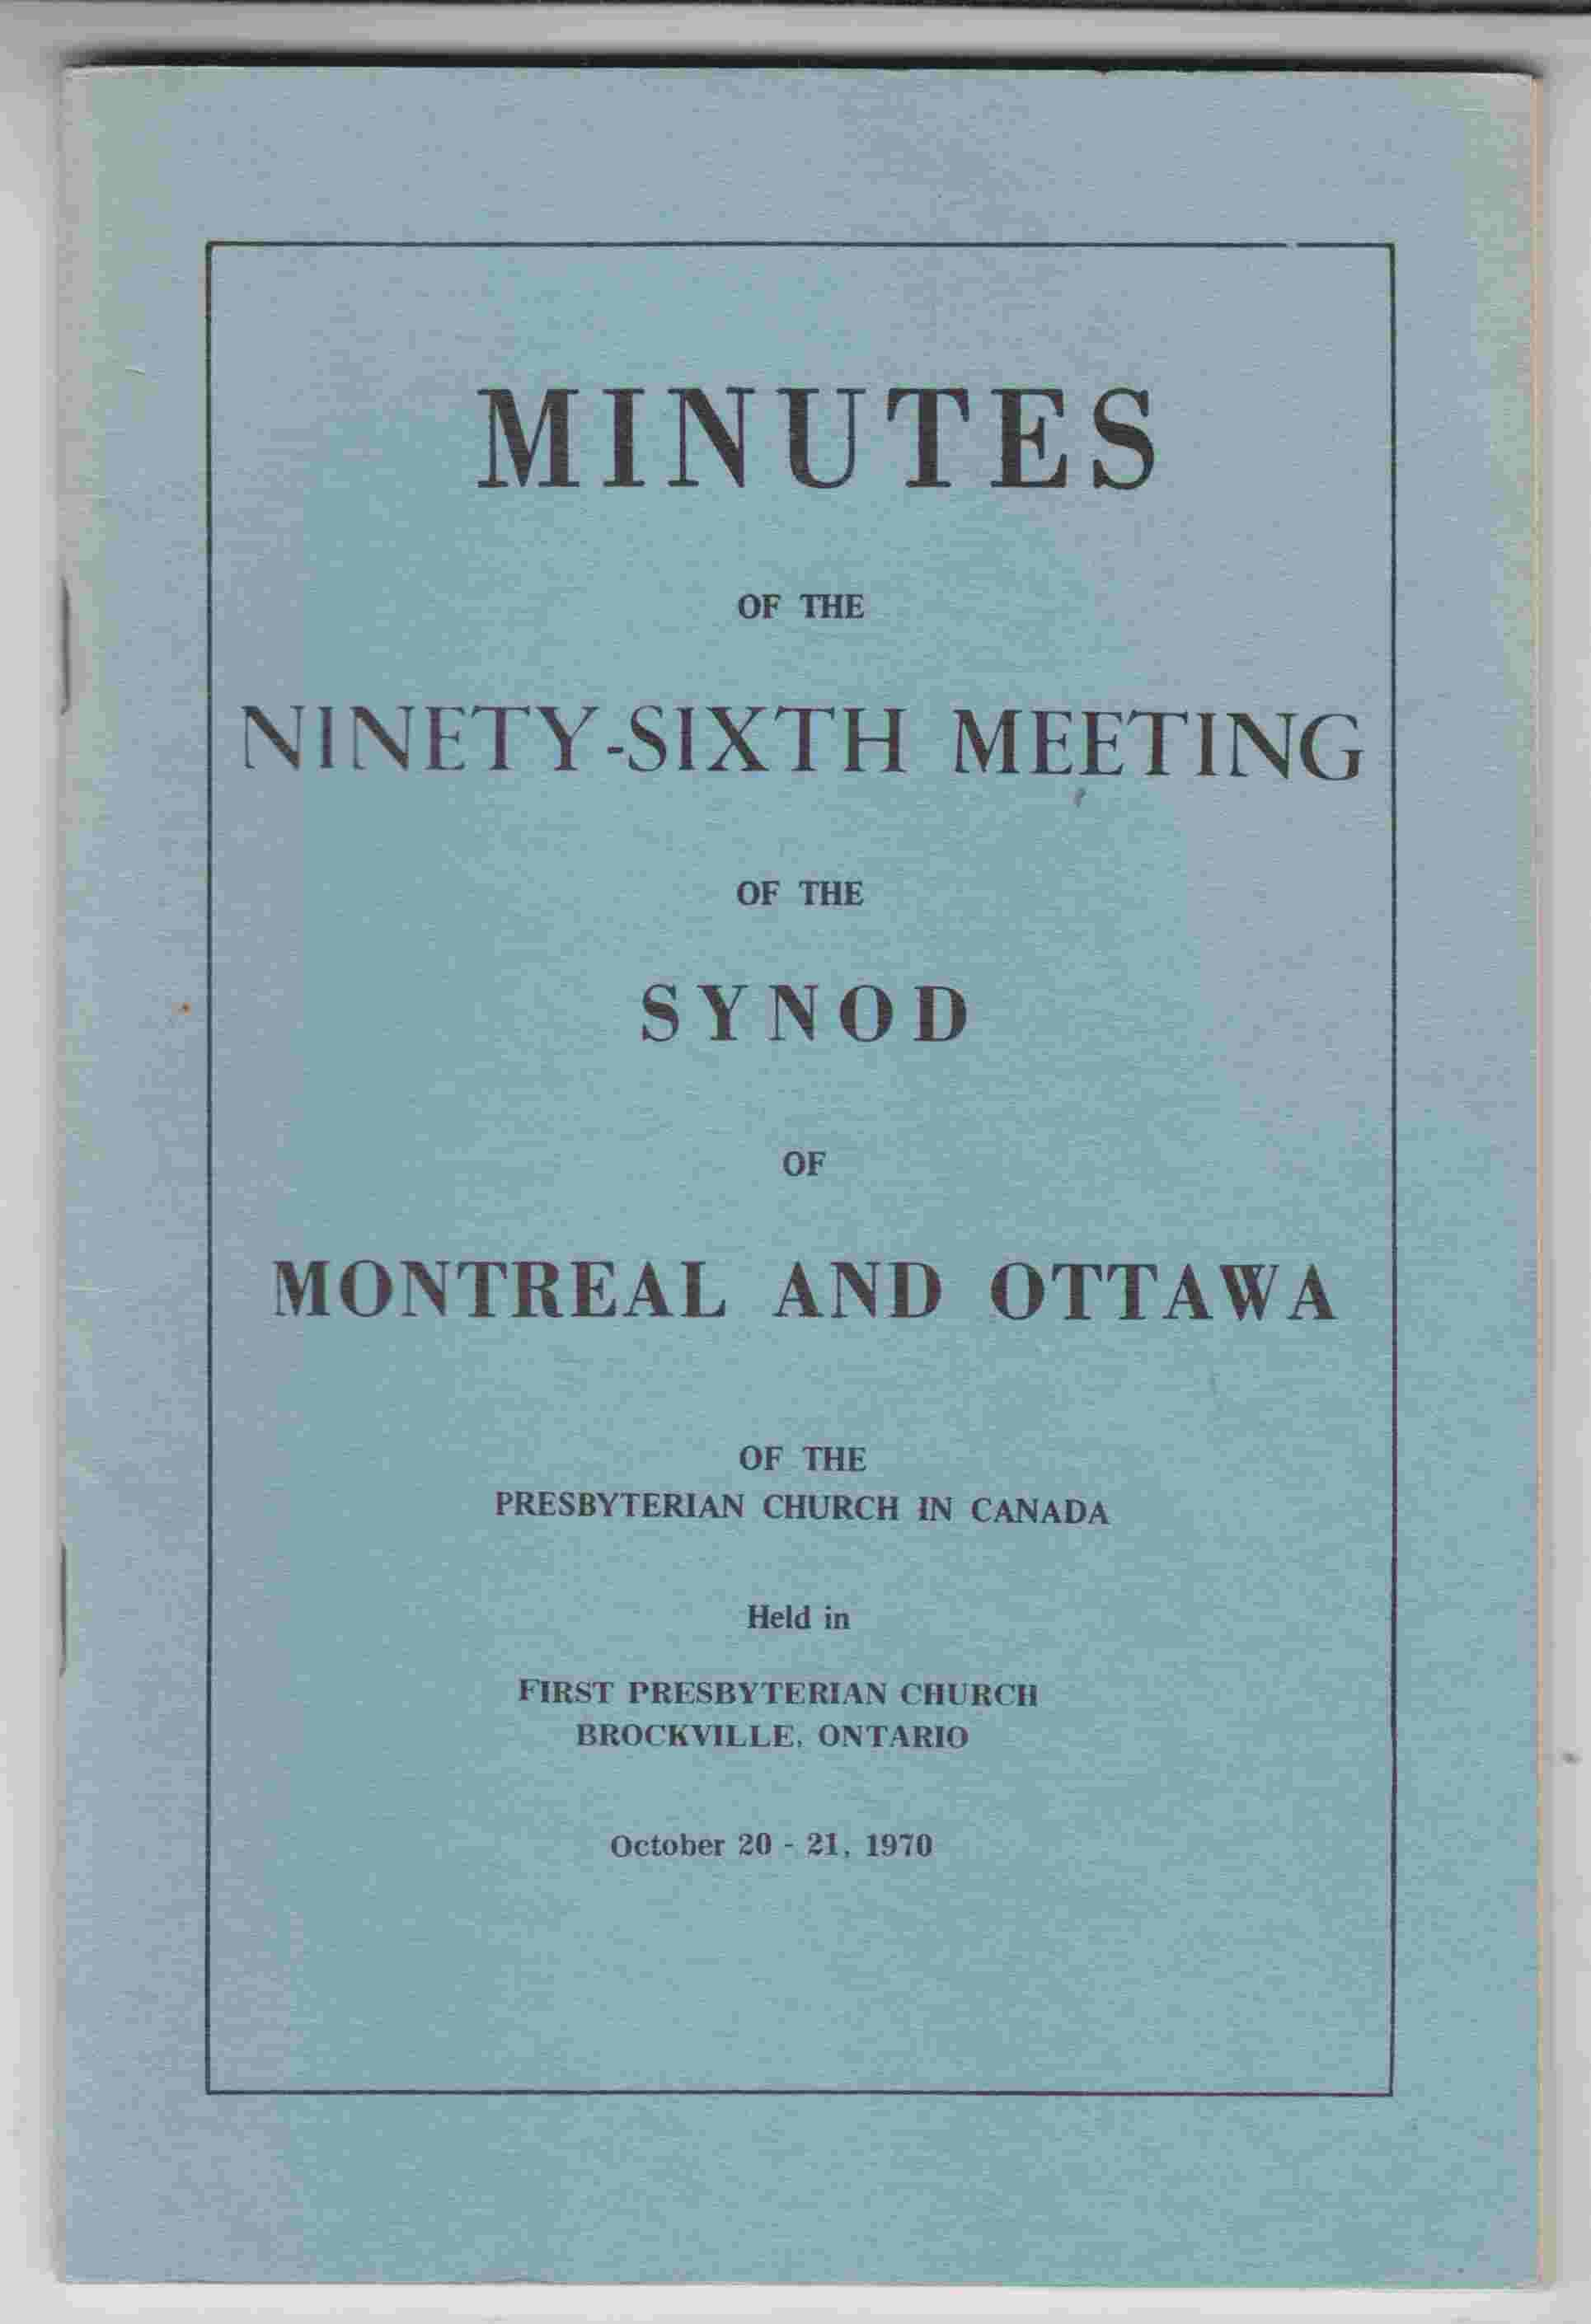 Image for Minutes of the Ninety-Sixth Meeting of the Synod of Montreal and Ottawa of the Presbyterian Church in Canada